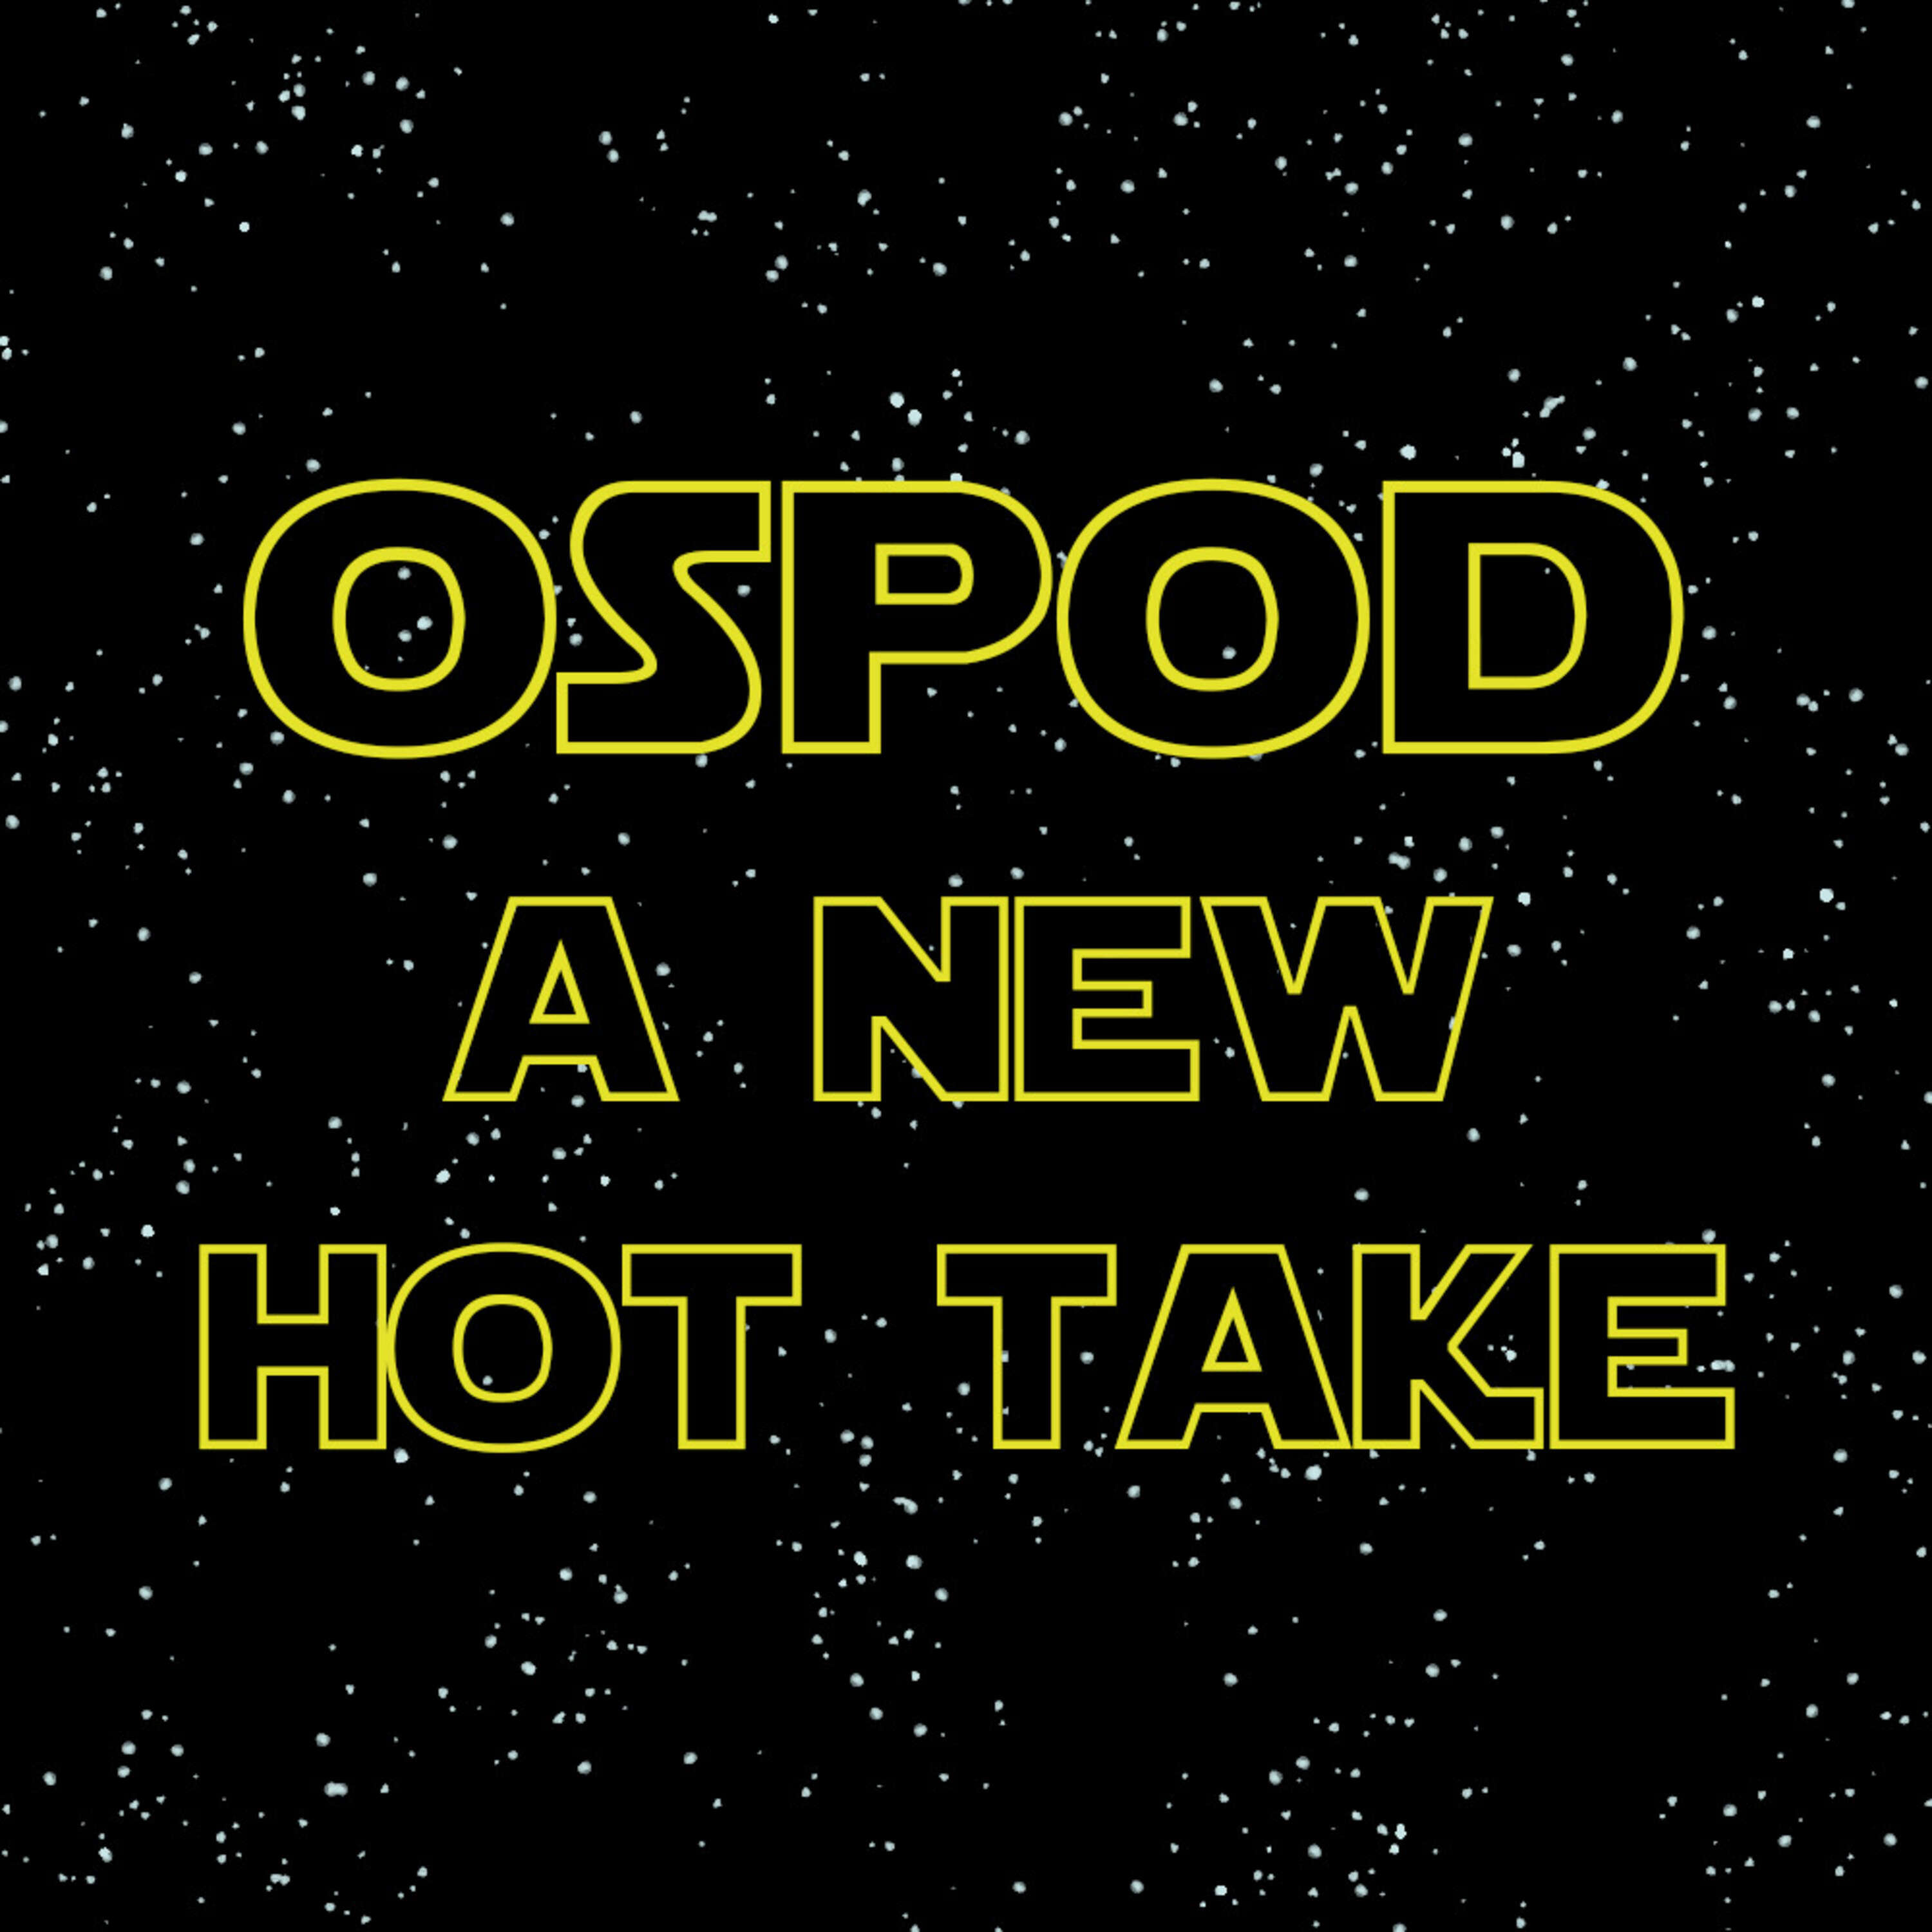 OSBonus! A New Hope (And By Hope, We Mean Hot Take)